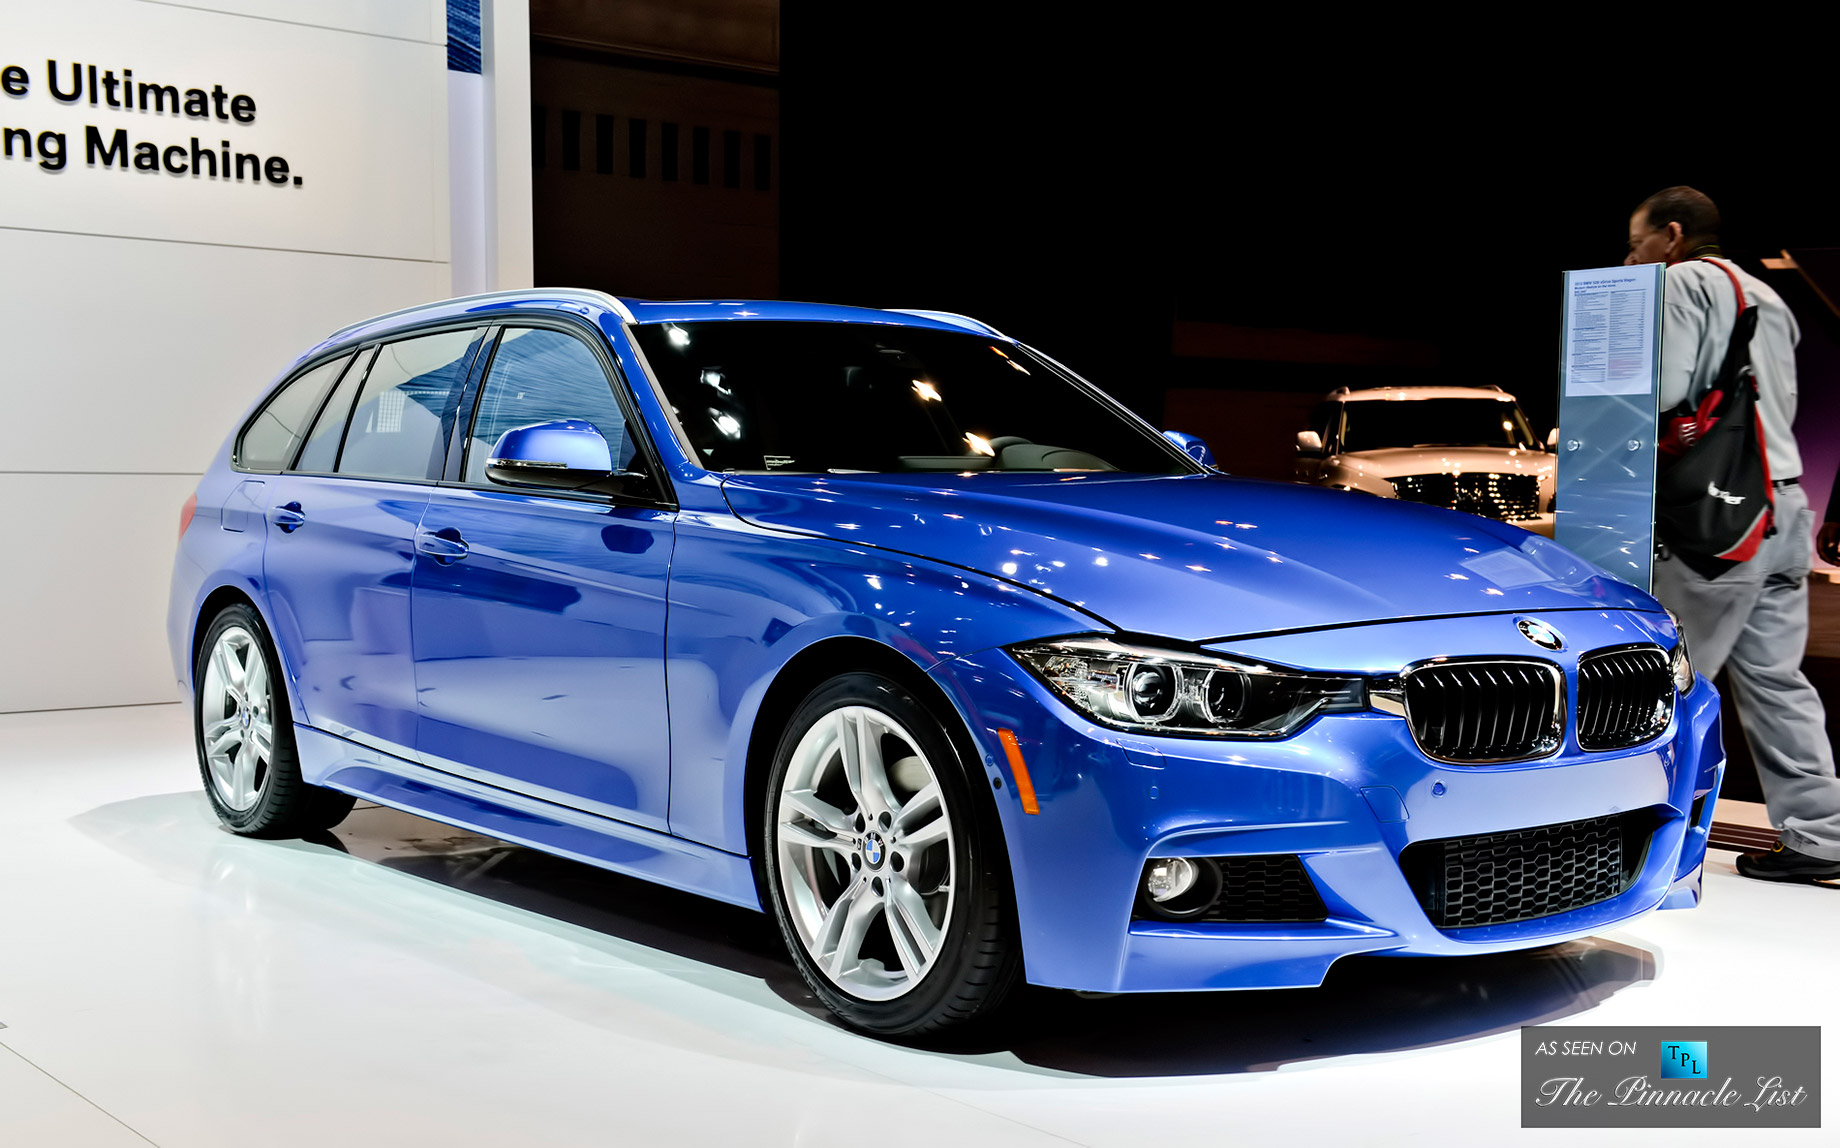 BMW 328i Wagon - The New Car Market is Back - 4 Hot Cars Sure to Impress in 2014